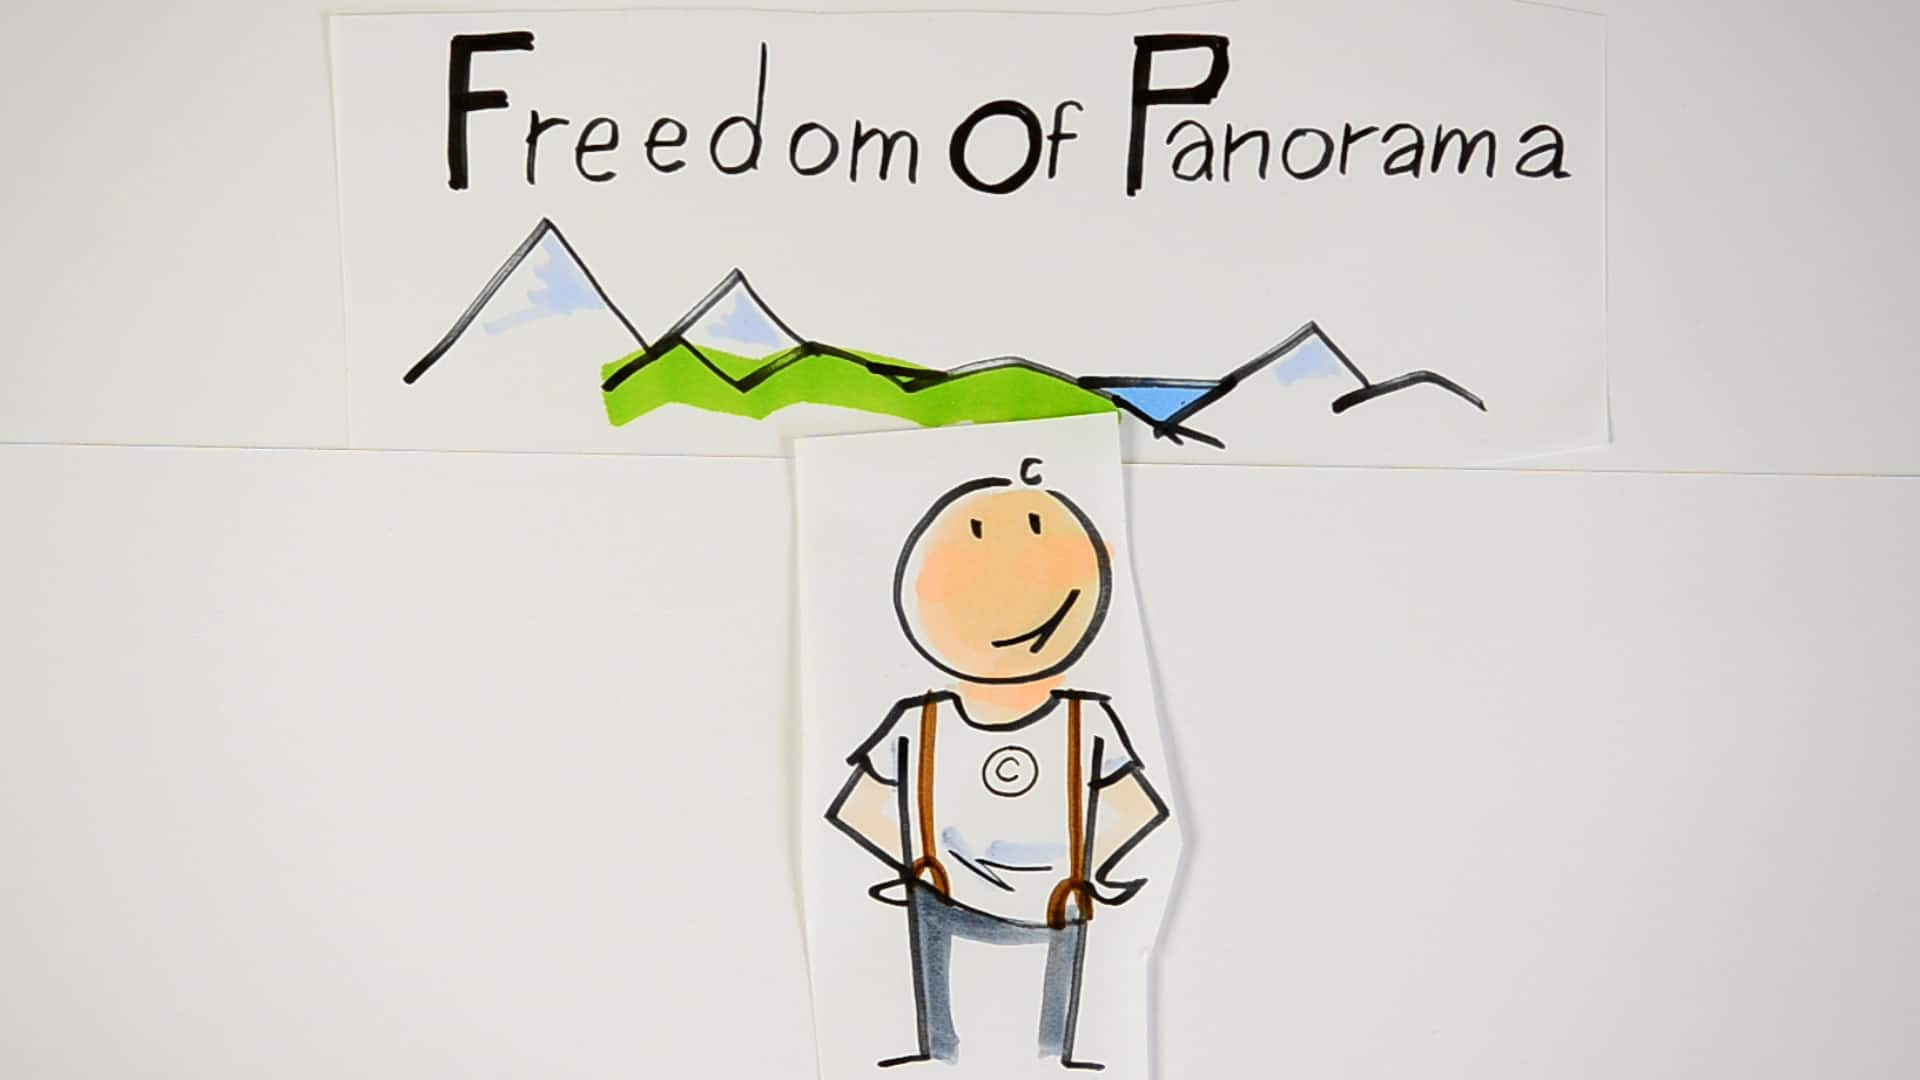 (English) Copy explains 'Freedom of Panorama'